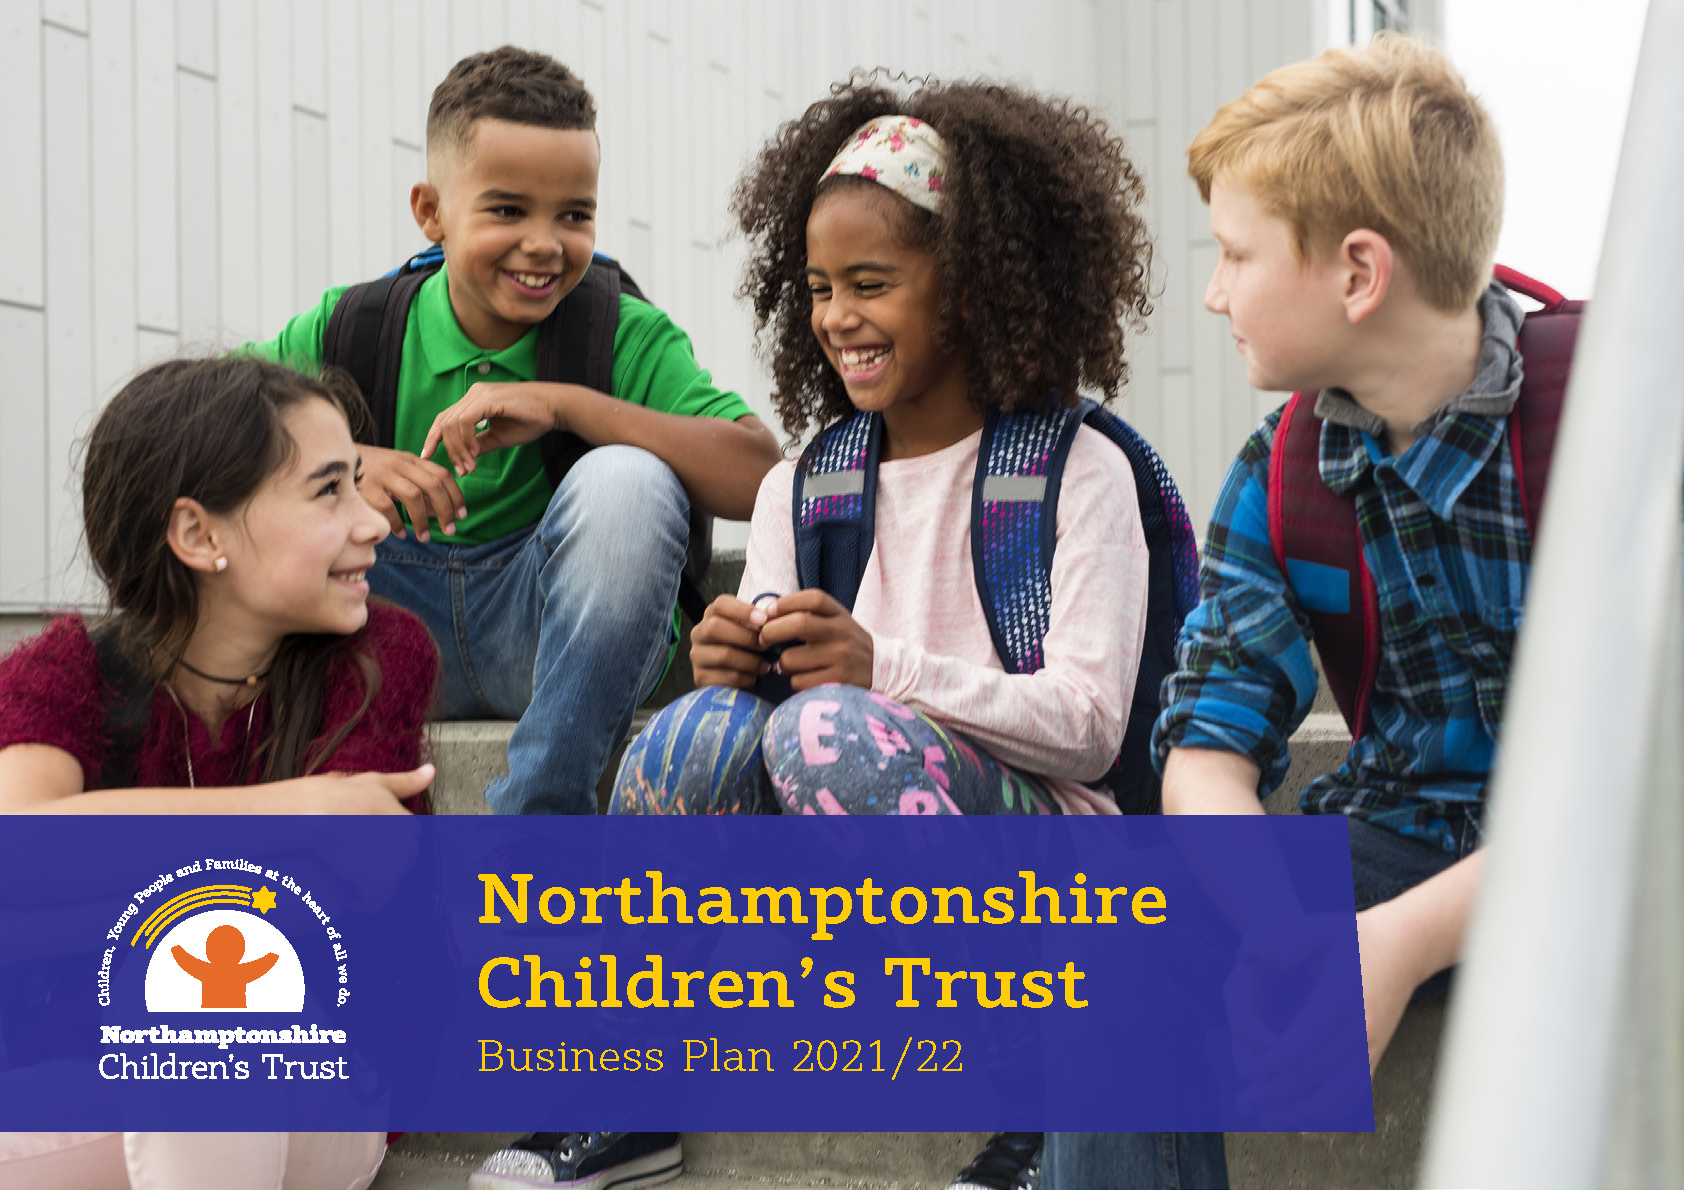 Northamptonshire Children's Trust publishes business plan